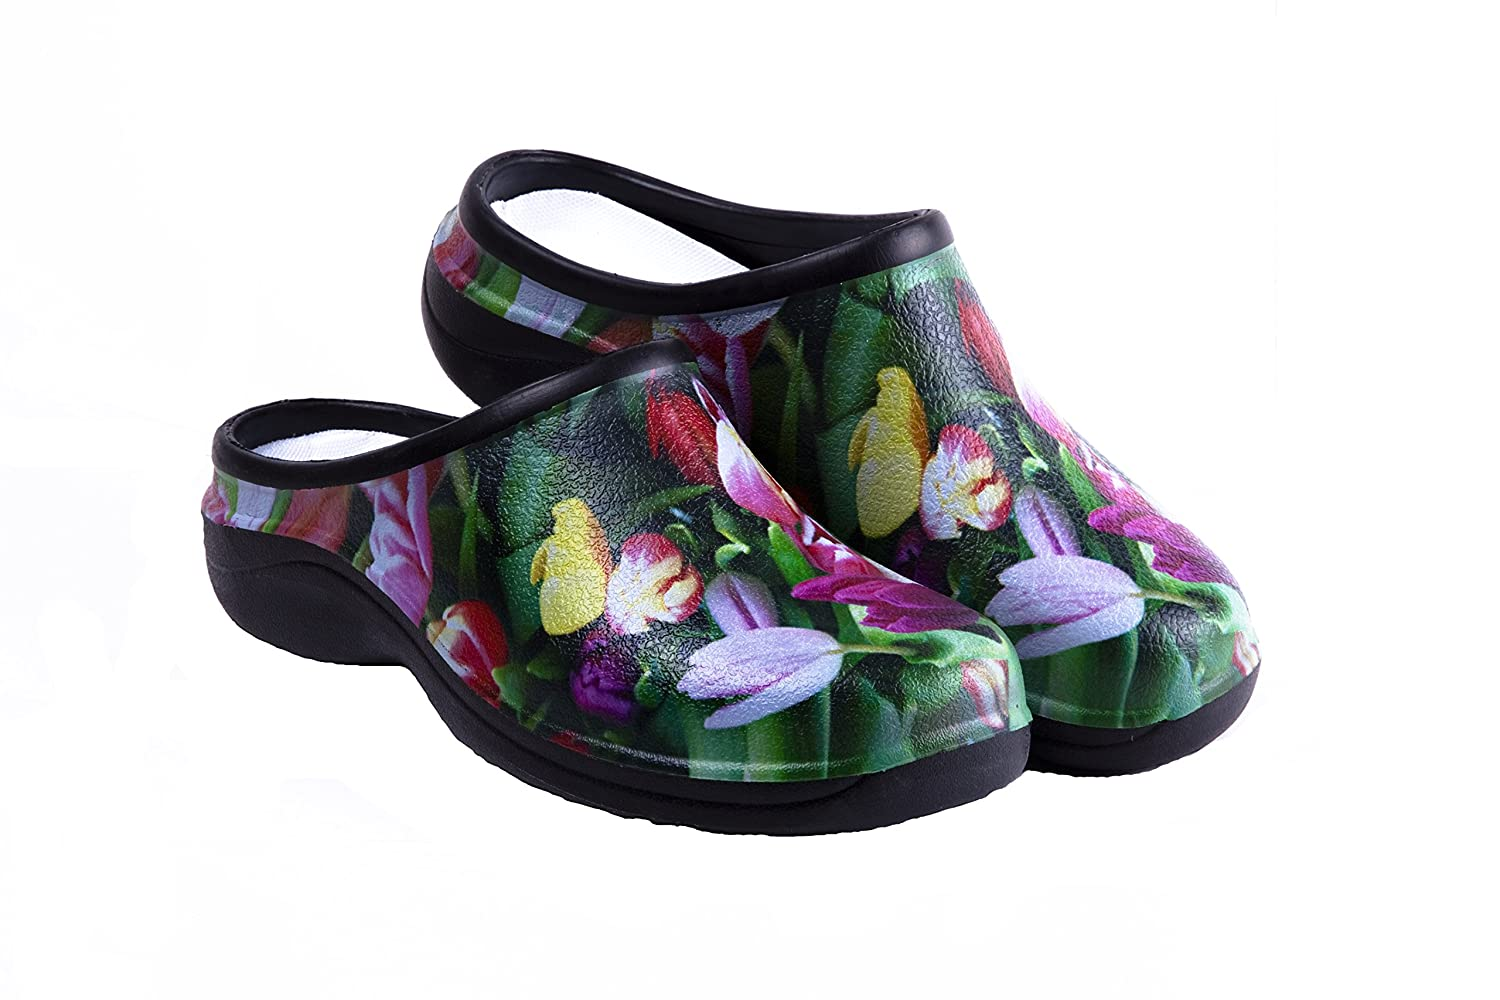 Backdoorshoes Waterproof Premium Garden Clogs with Arch Support-Tulip Design